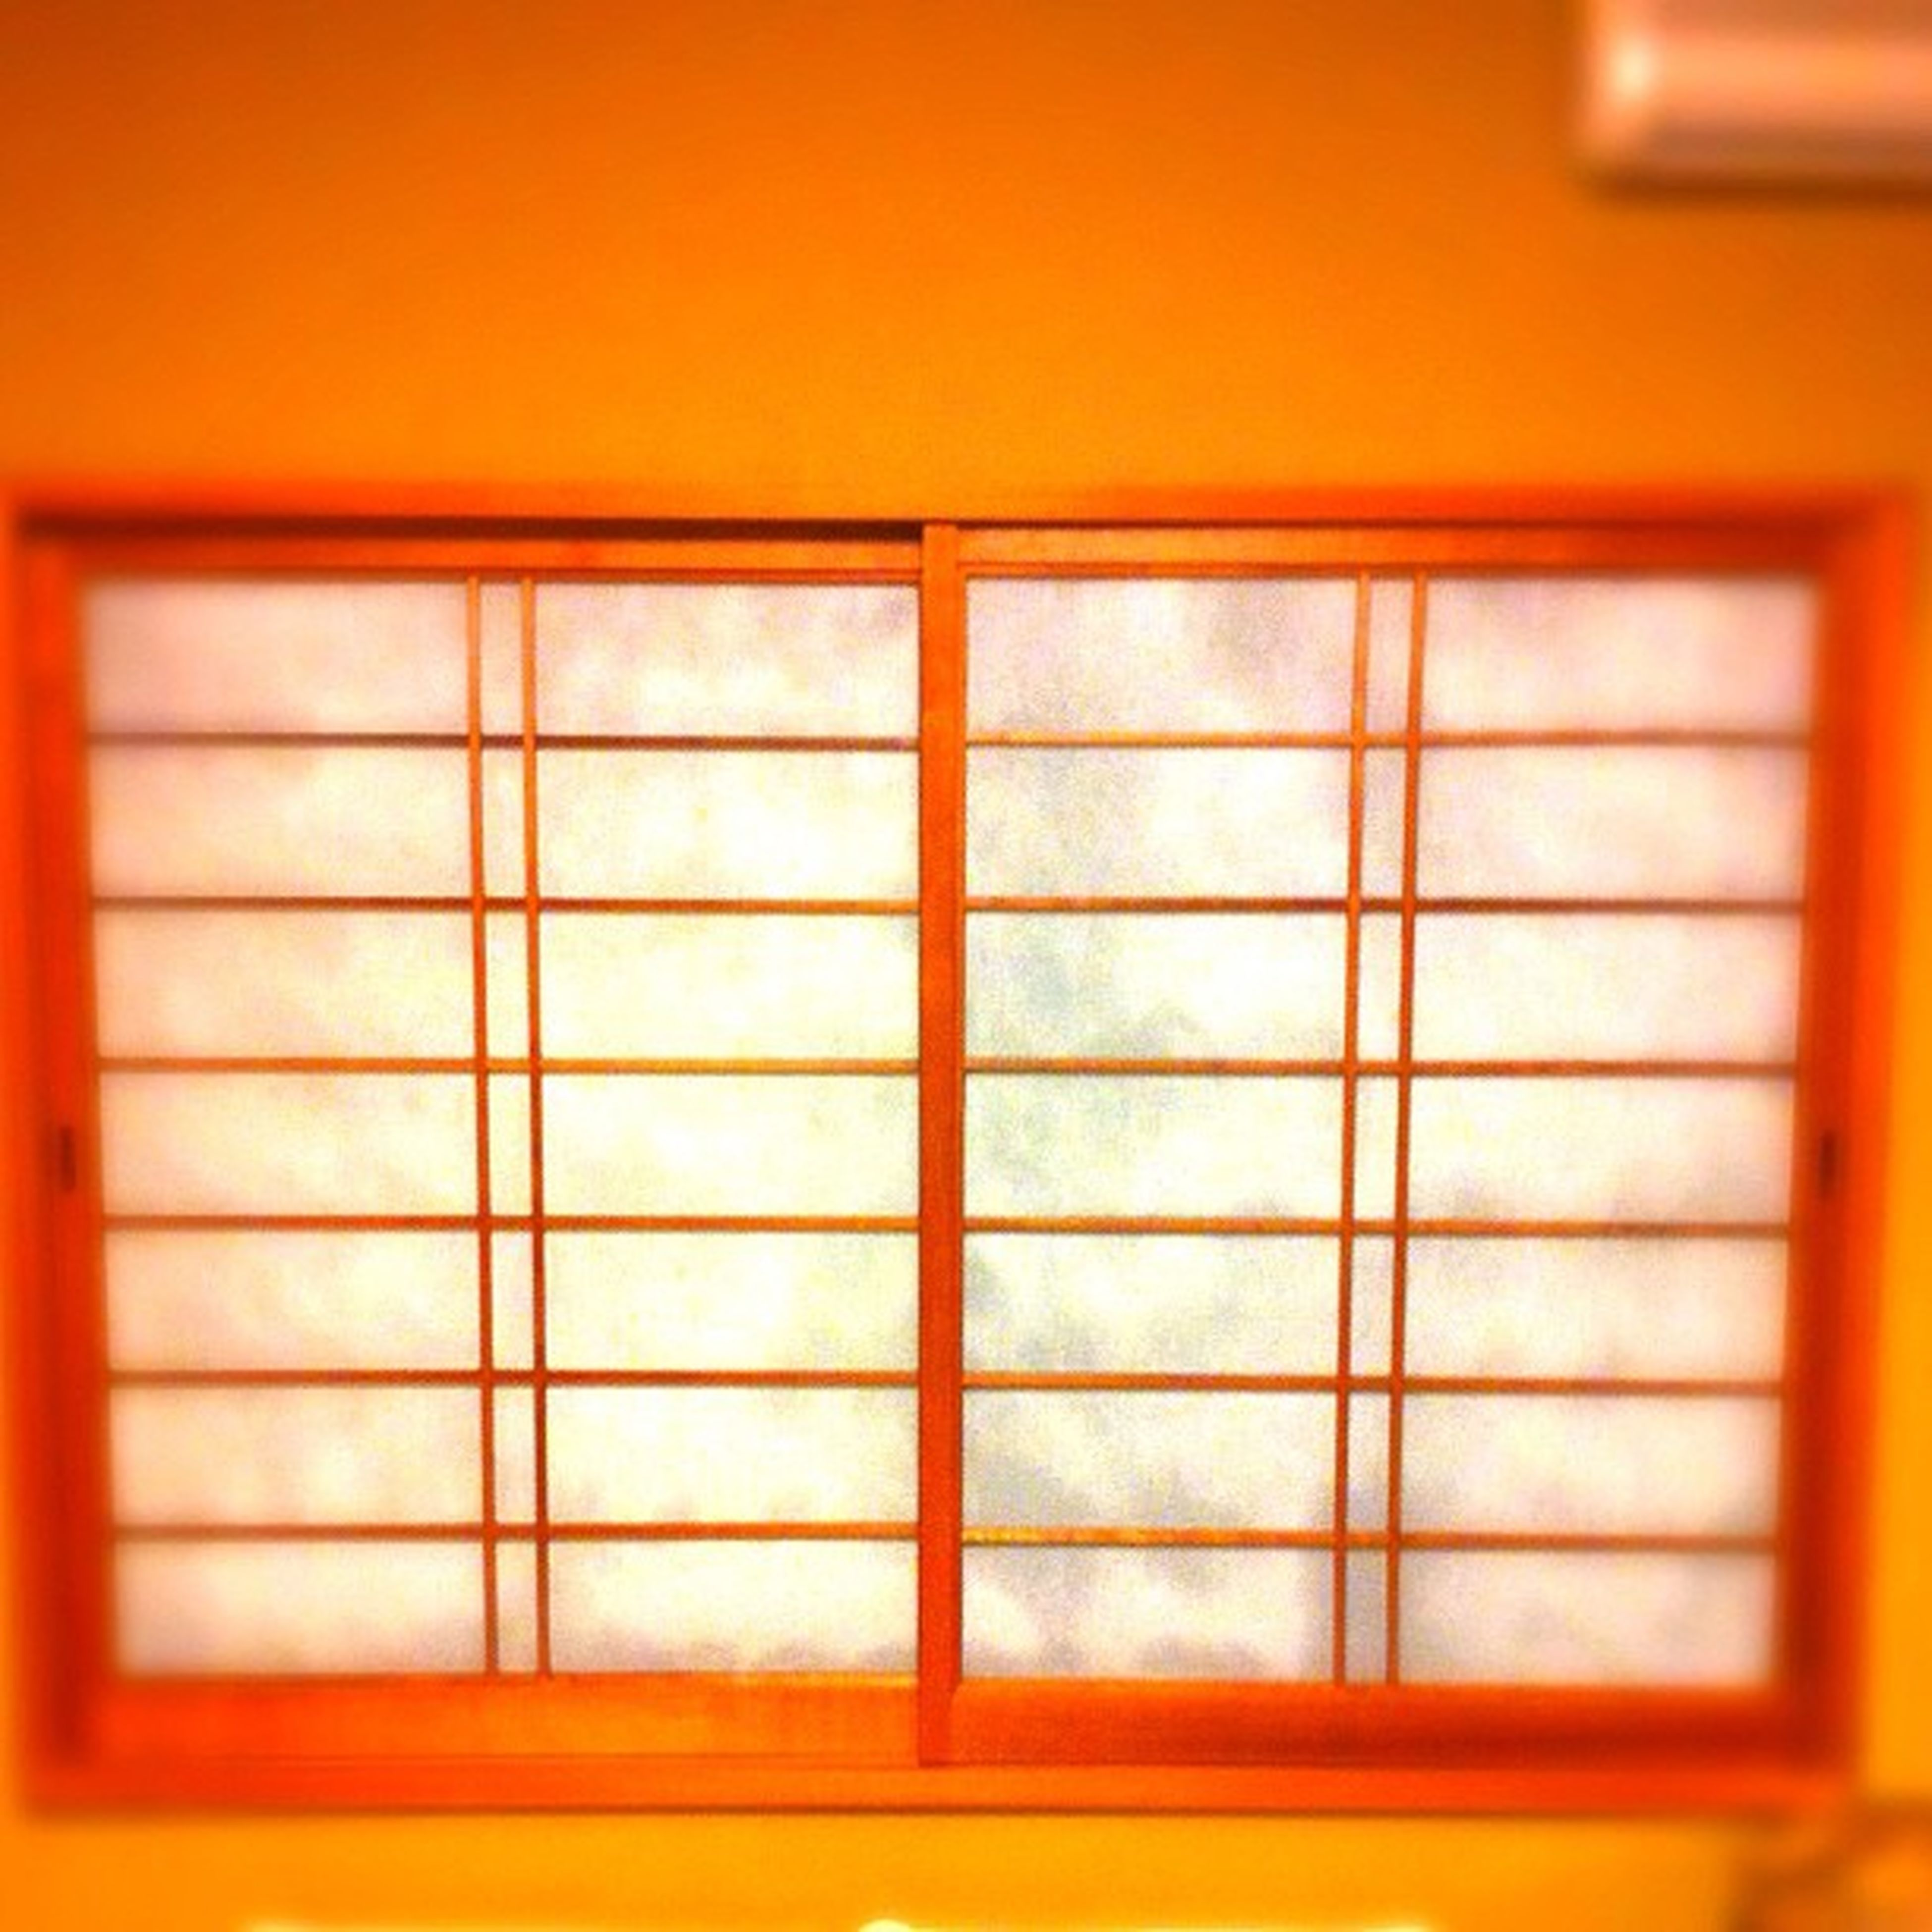 indoors, window, closed, built structure, architecture, yellow, door, house, wall, wall - building feature, orange color, no people, full frame, pattern, shutter, safety, wood - material, close-up, blinds, building exterior